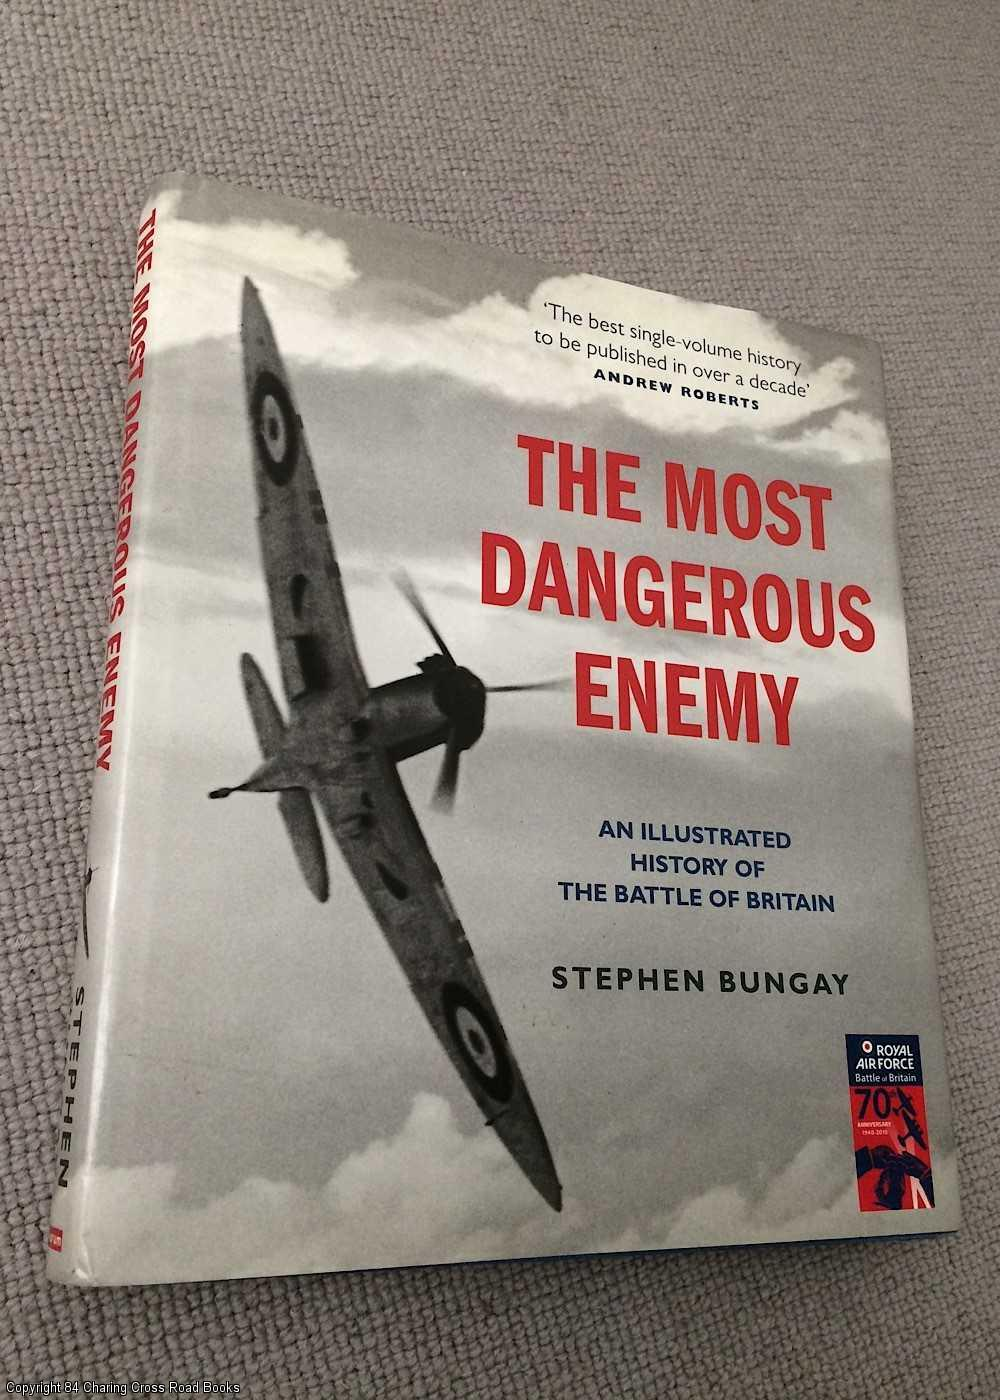 BUNGAY, STEPHEN - The Most Dangerous Enemy: An Illustrated History of the Battle of Britain